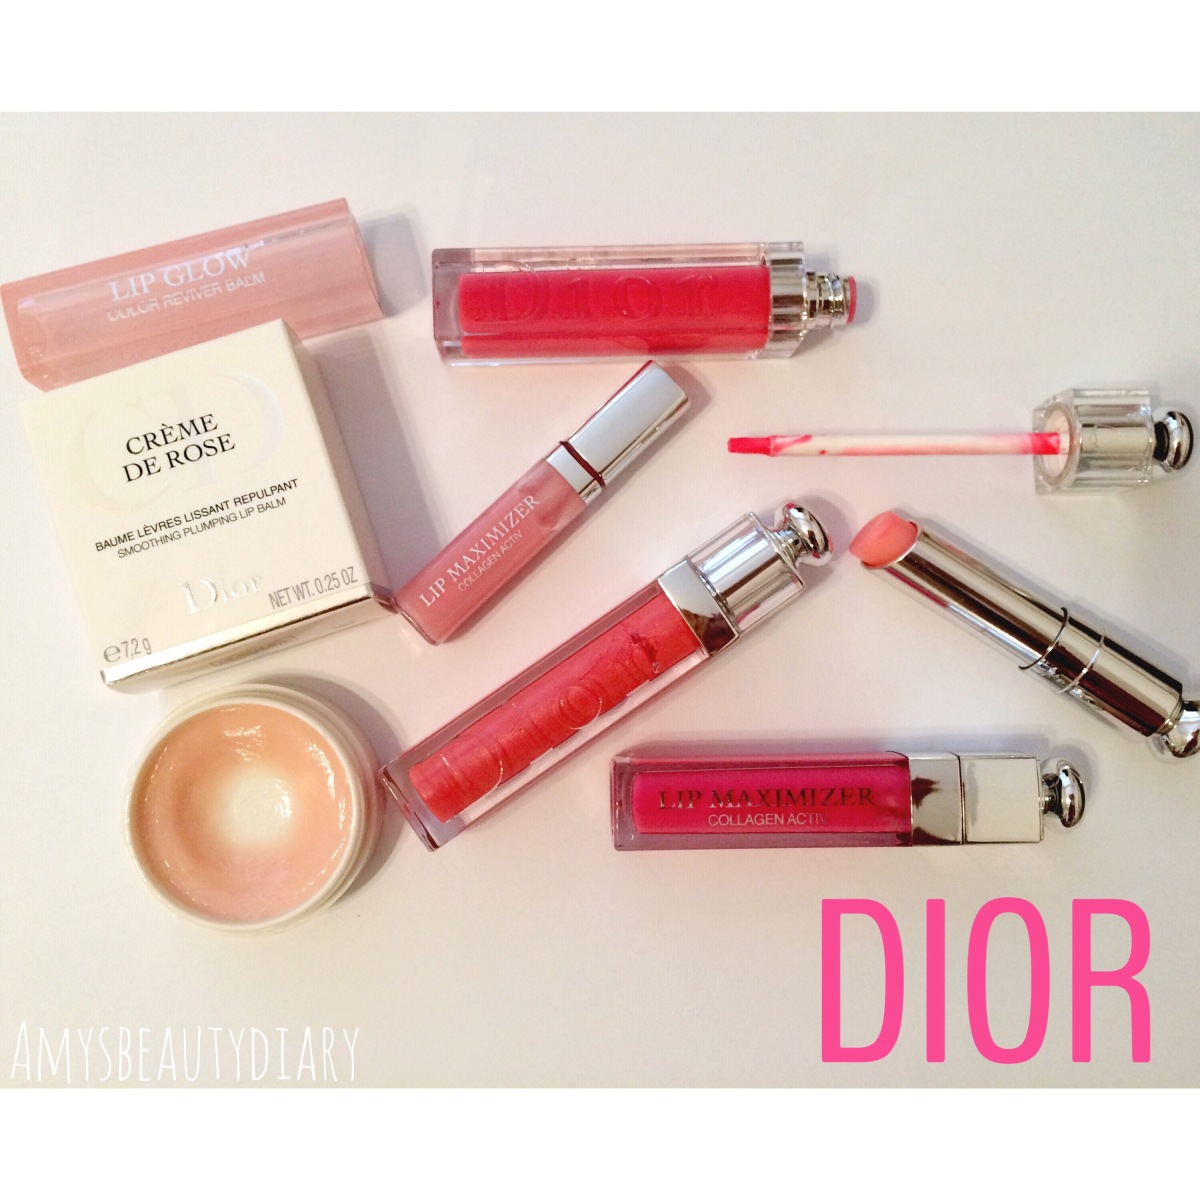 DIOR does Lips